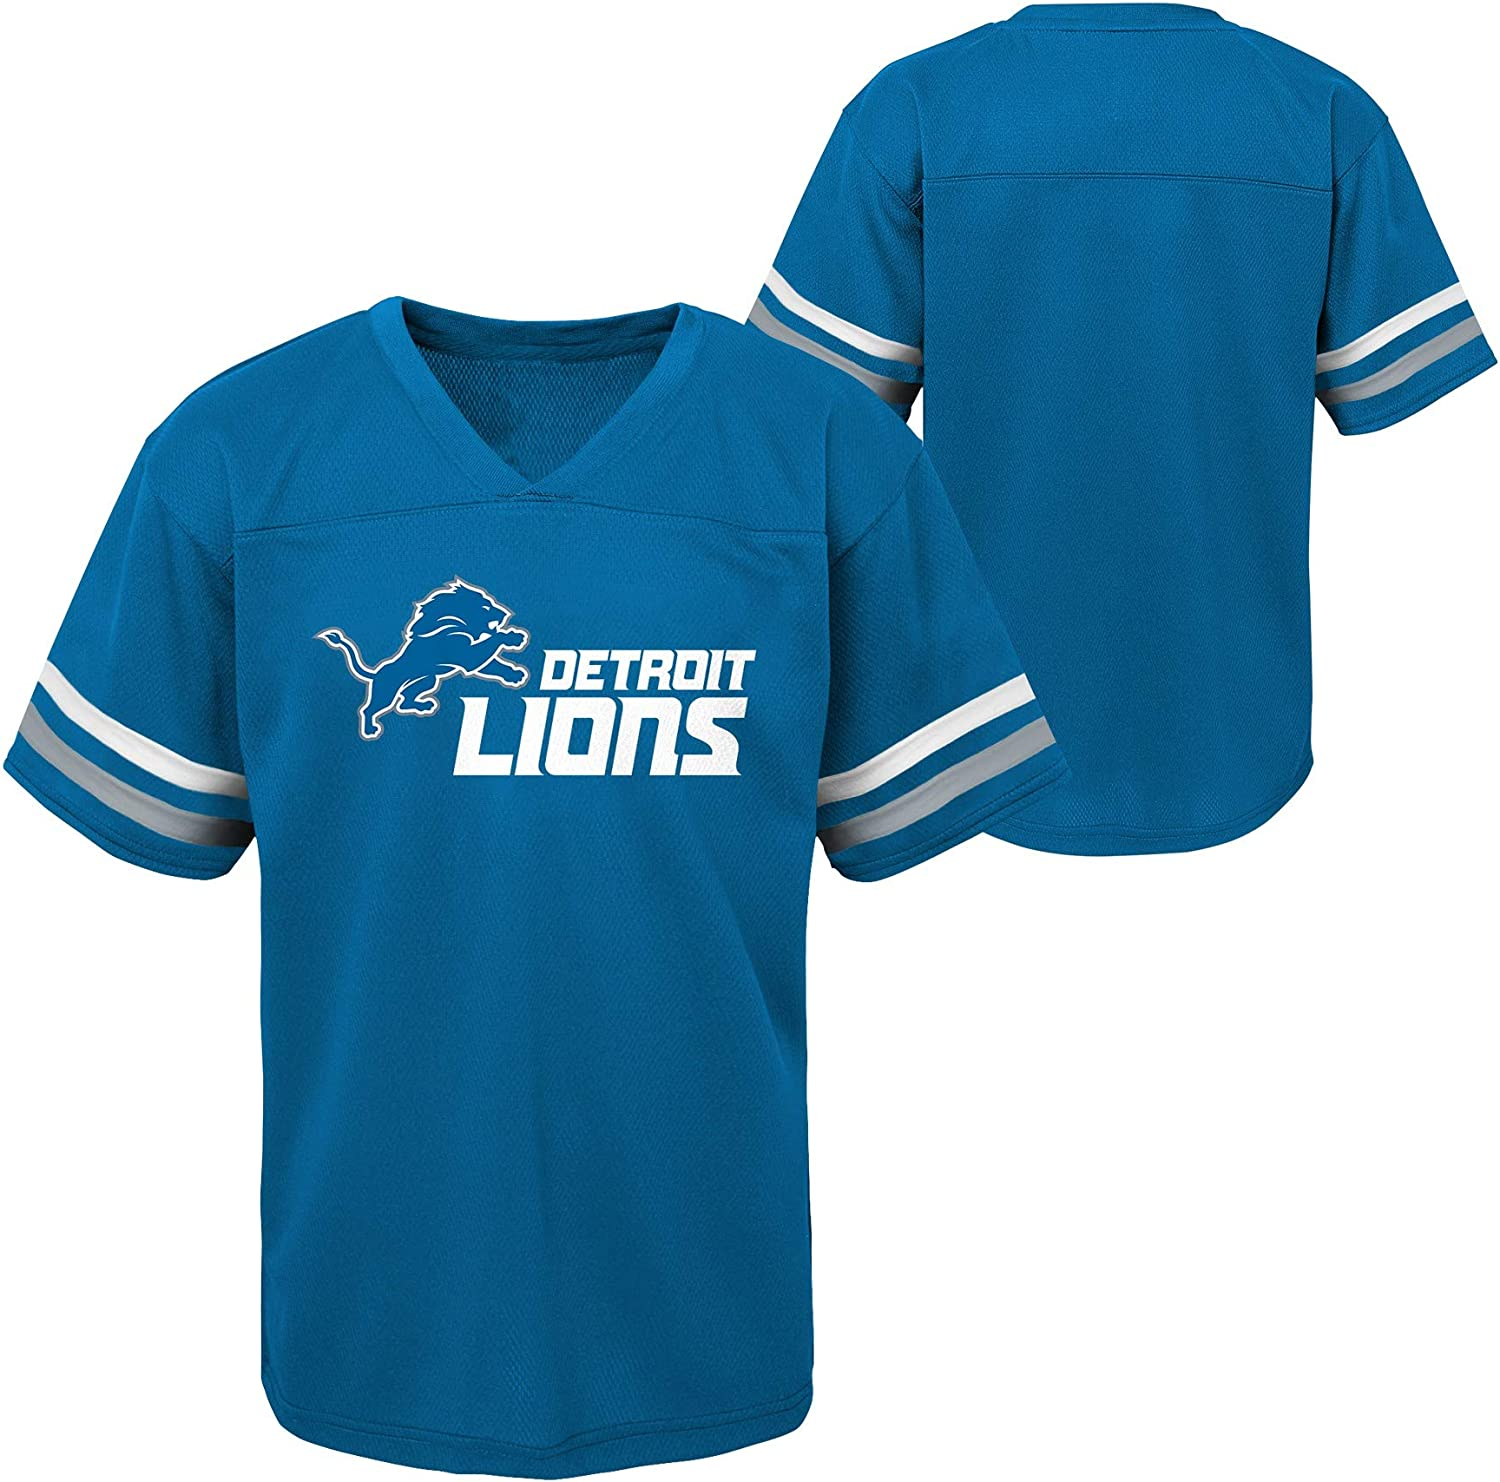 Outerstuff NFL Toddlers Short Sleeve Football Jersey Team Popular standard Free Shipping Cheap Bargain Gift